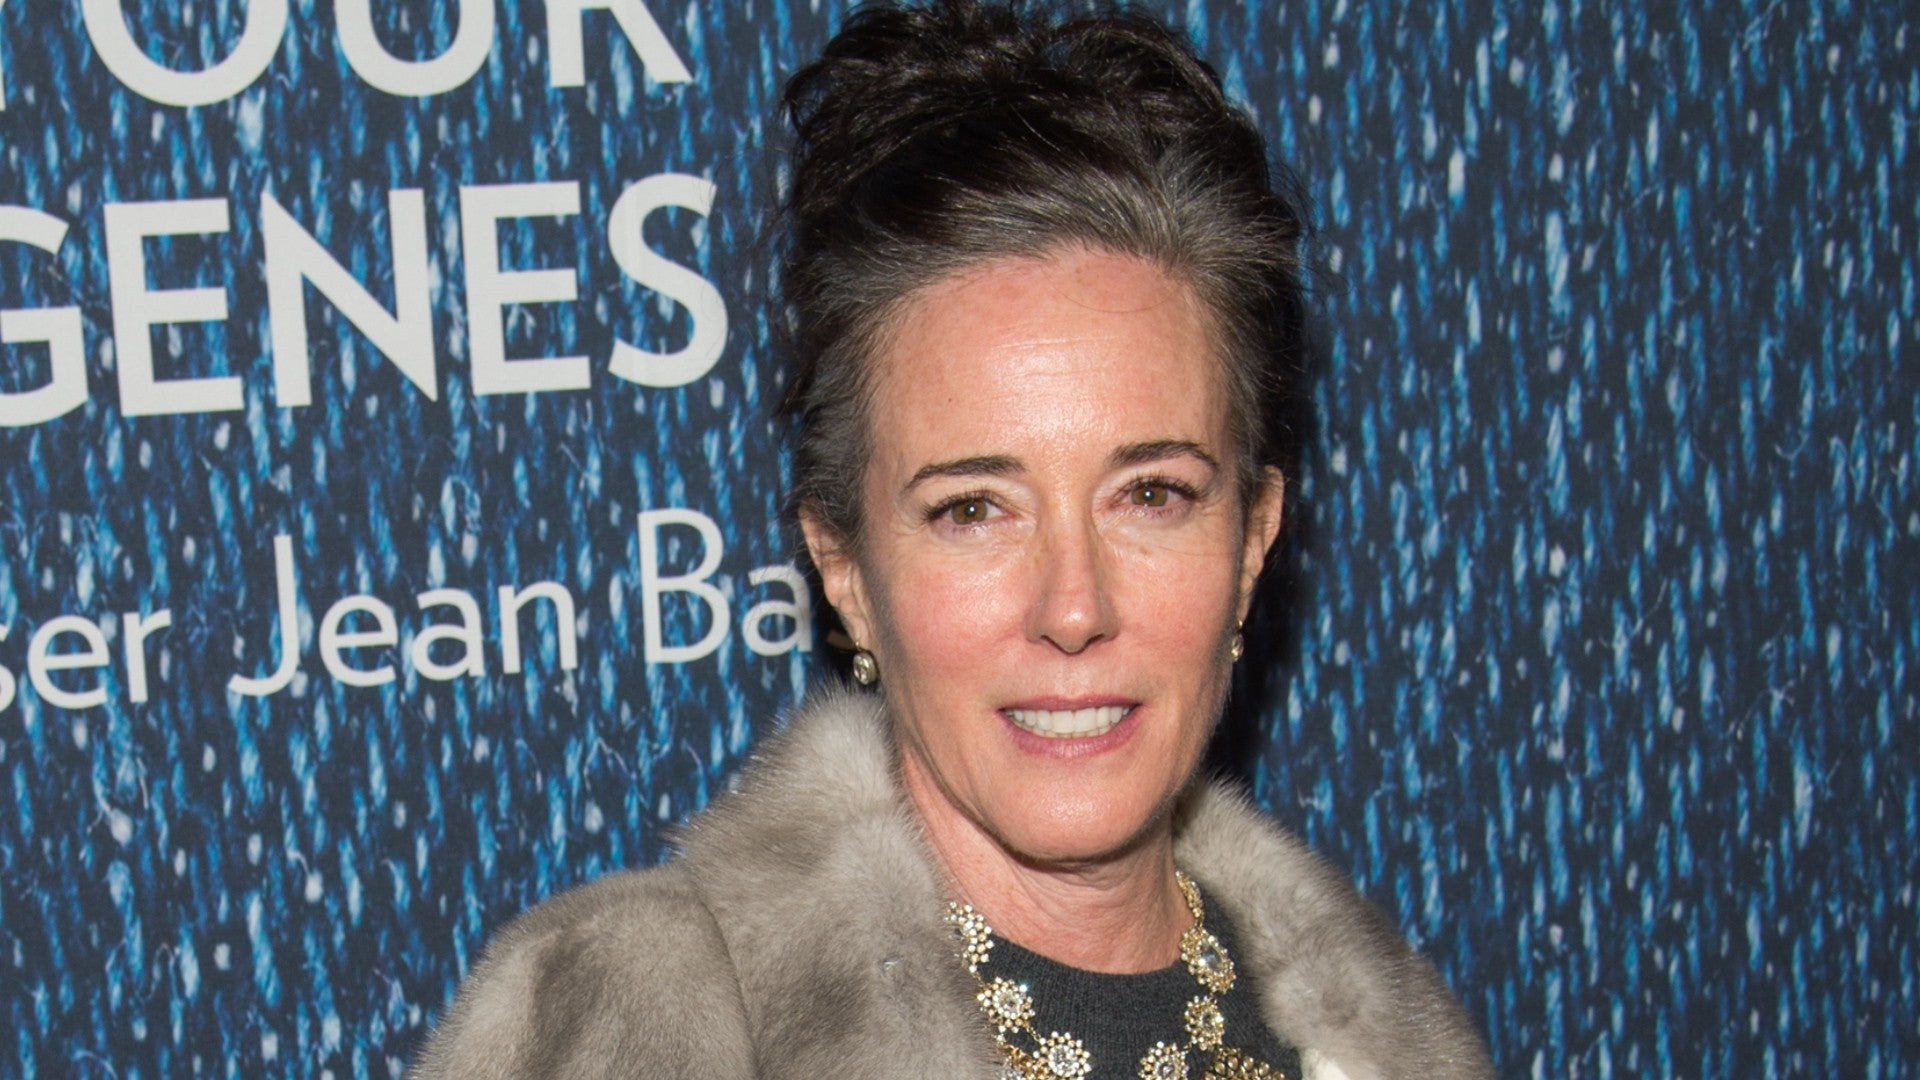 Kate Spade Iconic Fashion Designer Dead At 55 Entertainment Tonight